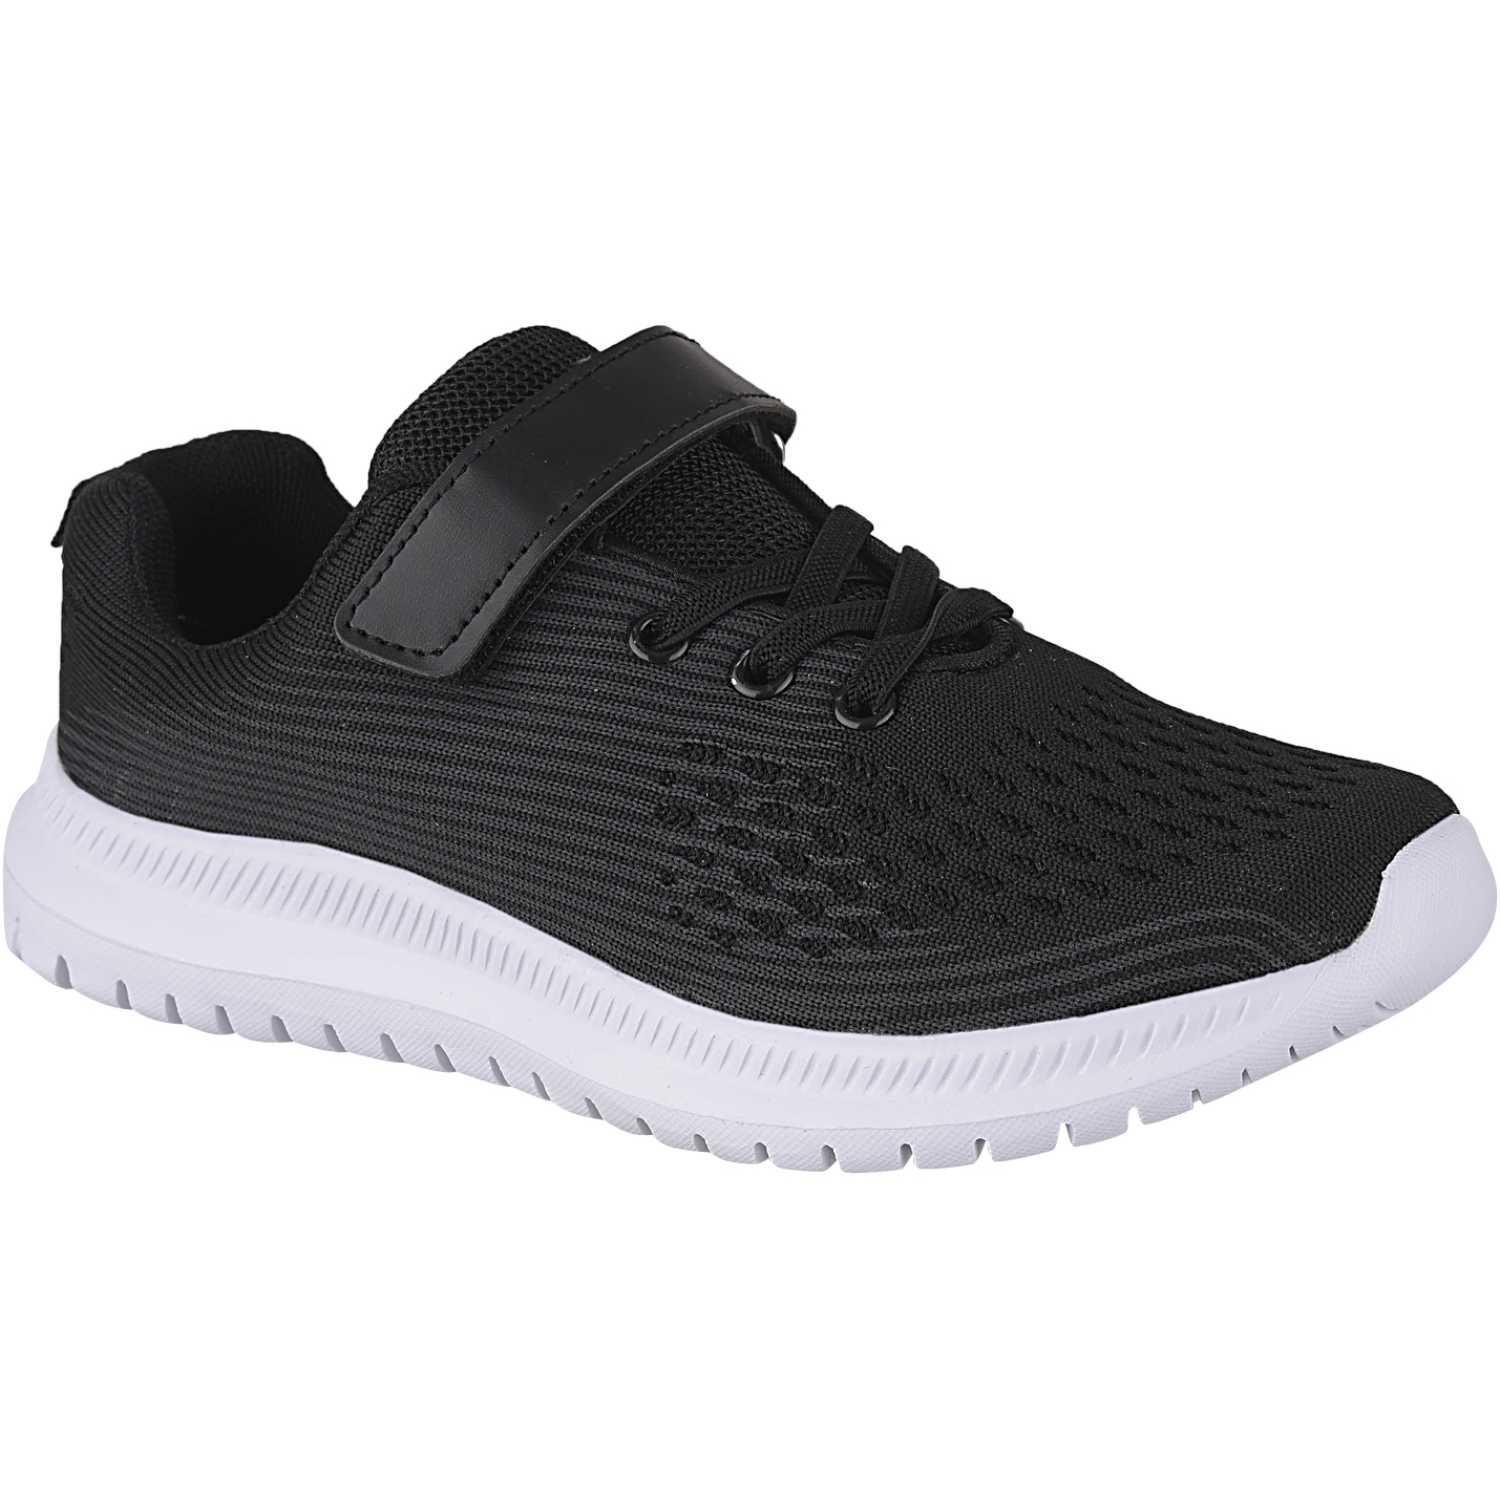 Platanitos z 038 Negro Zapatillas Fashion